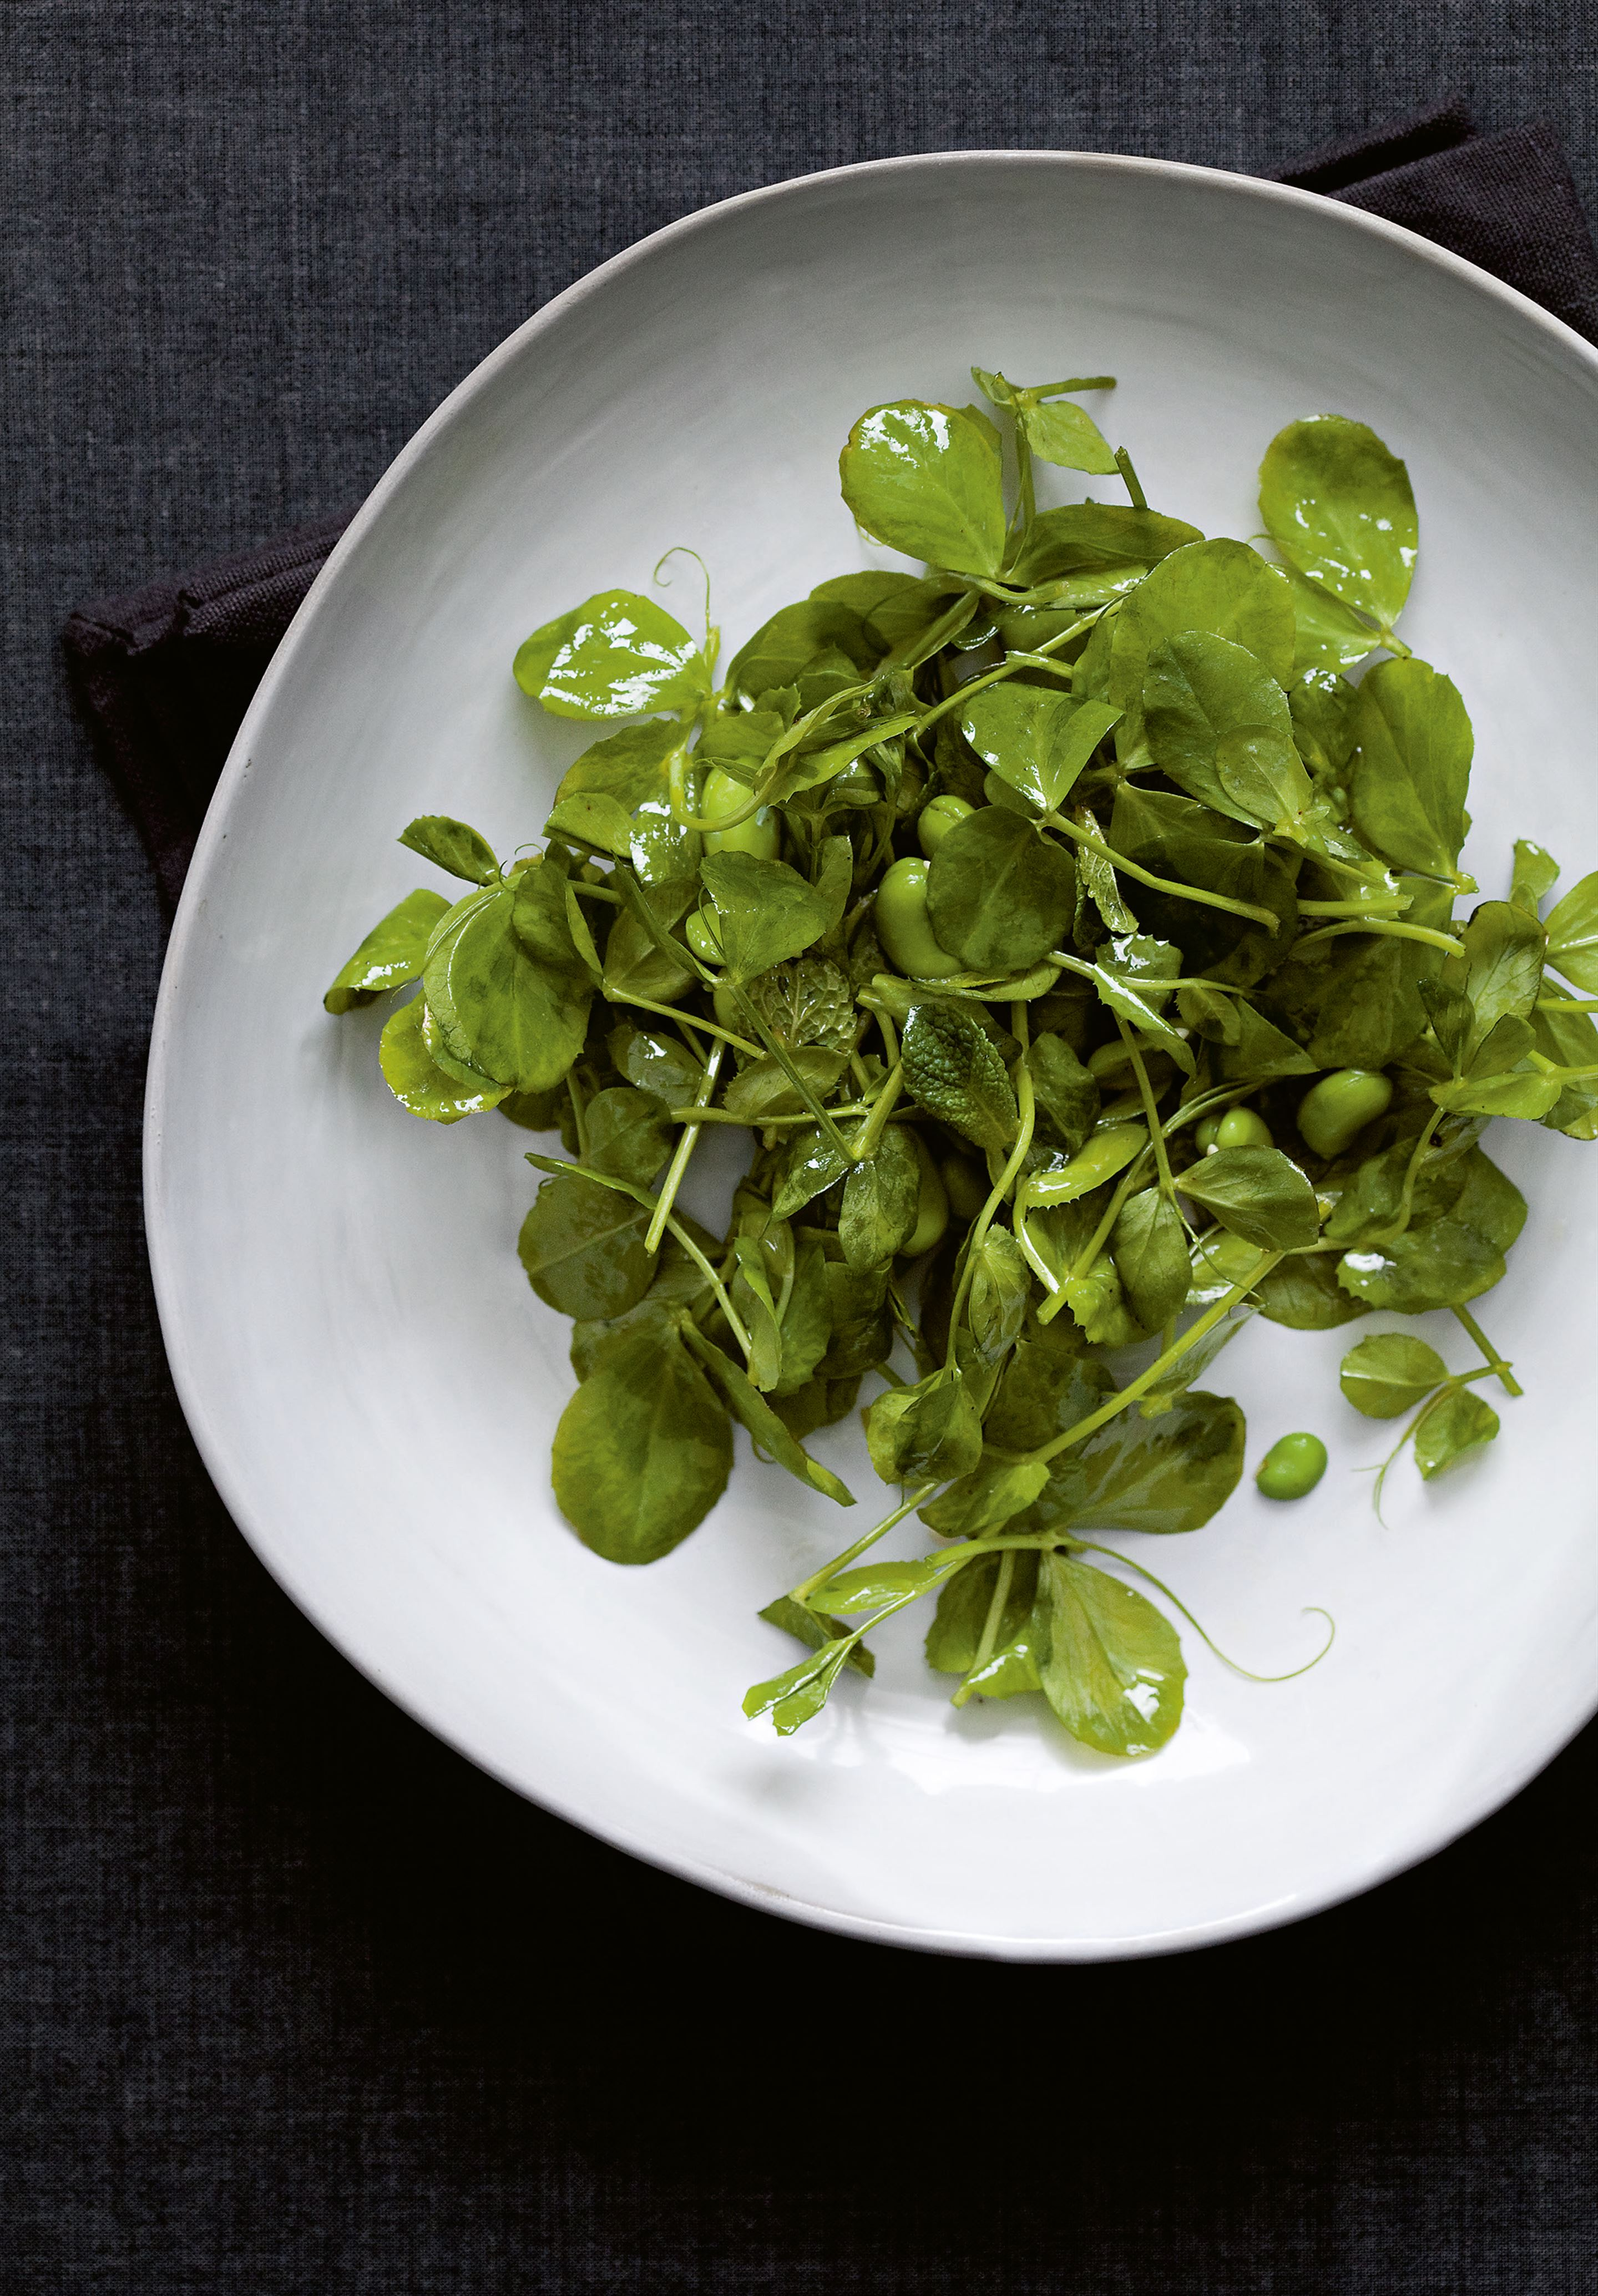 Broad bean salad with mint & pea shoots